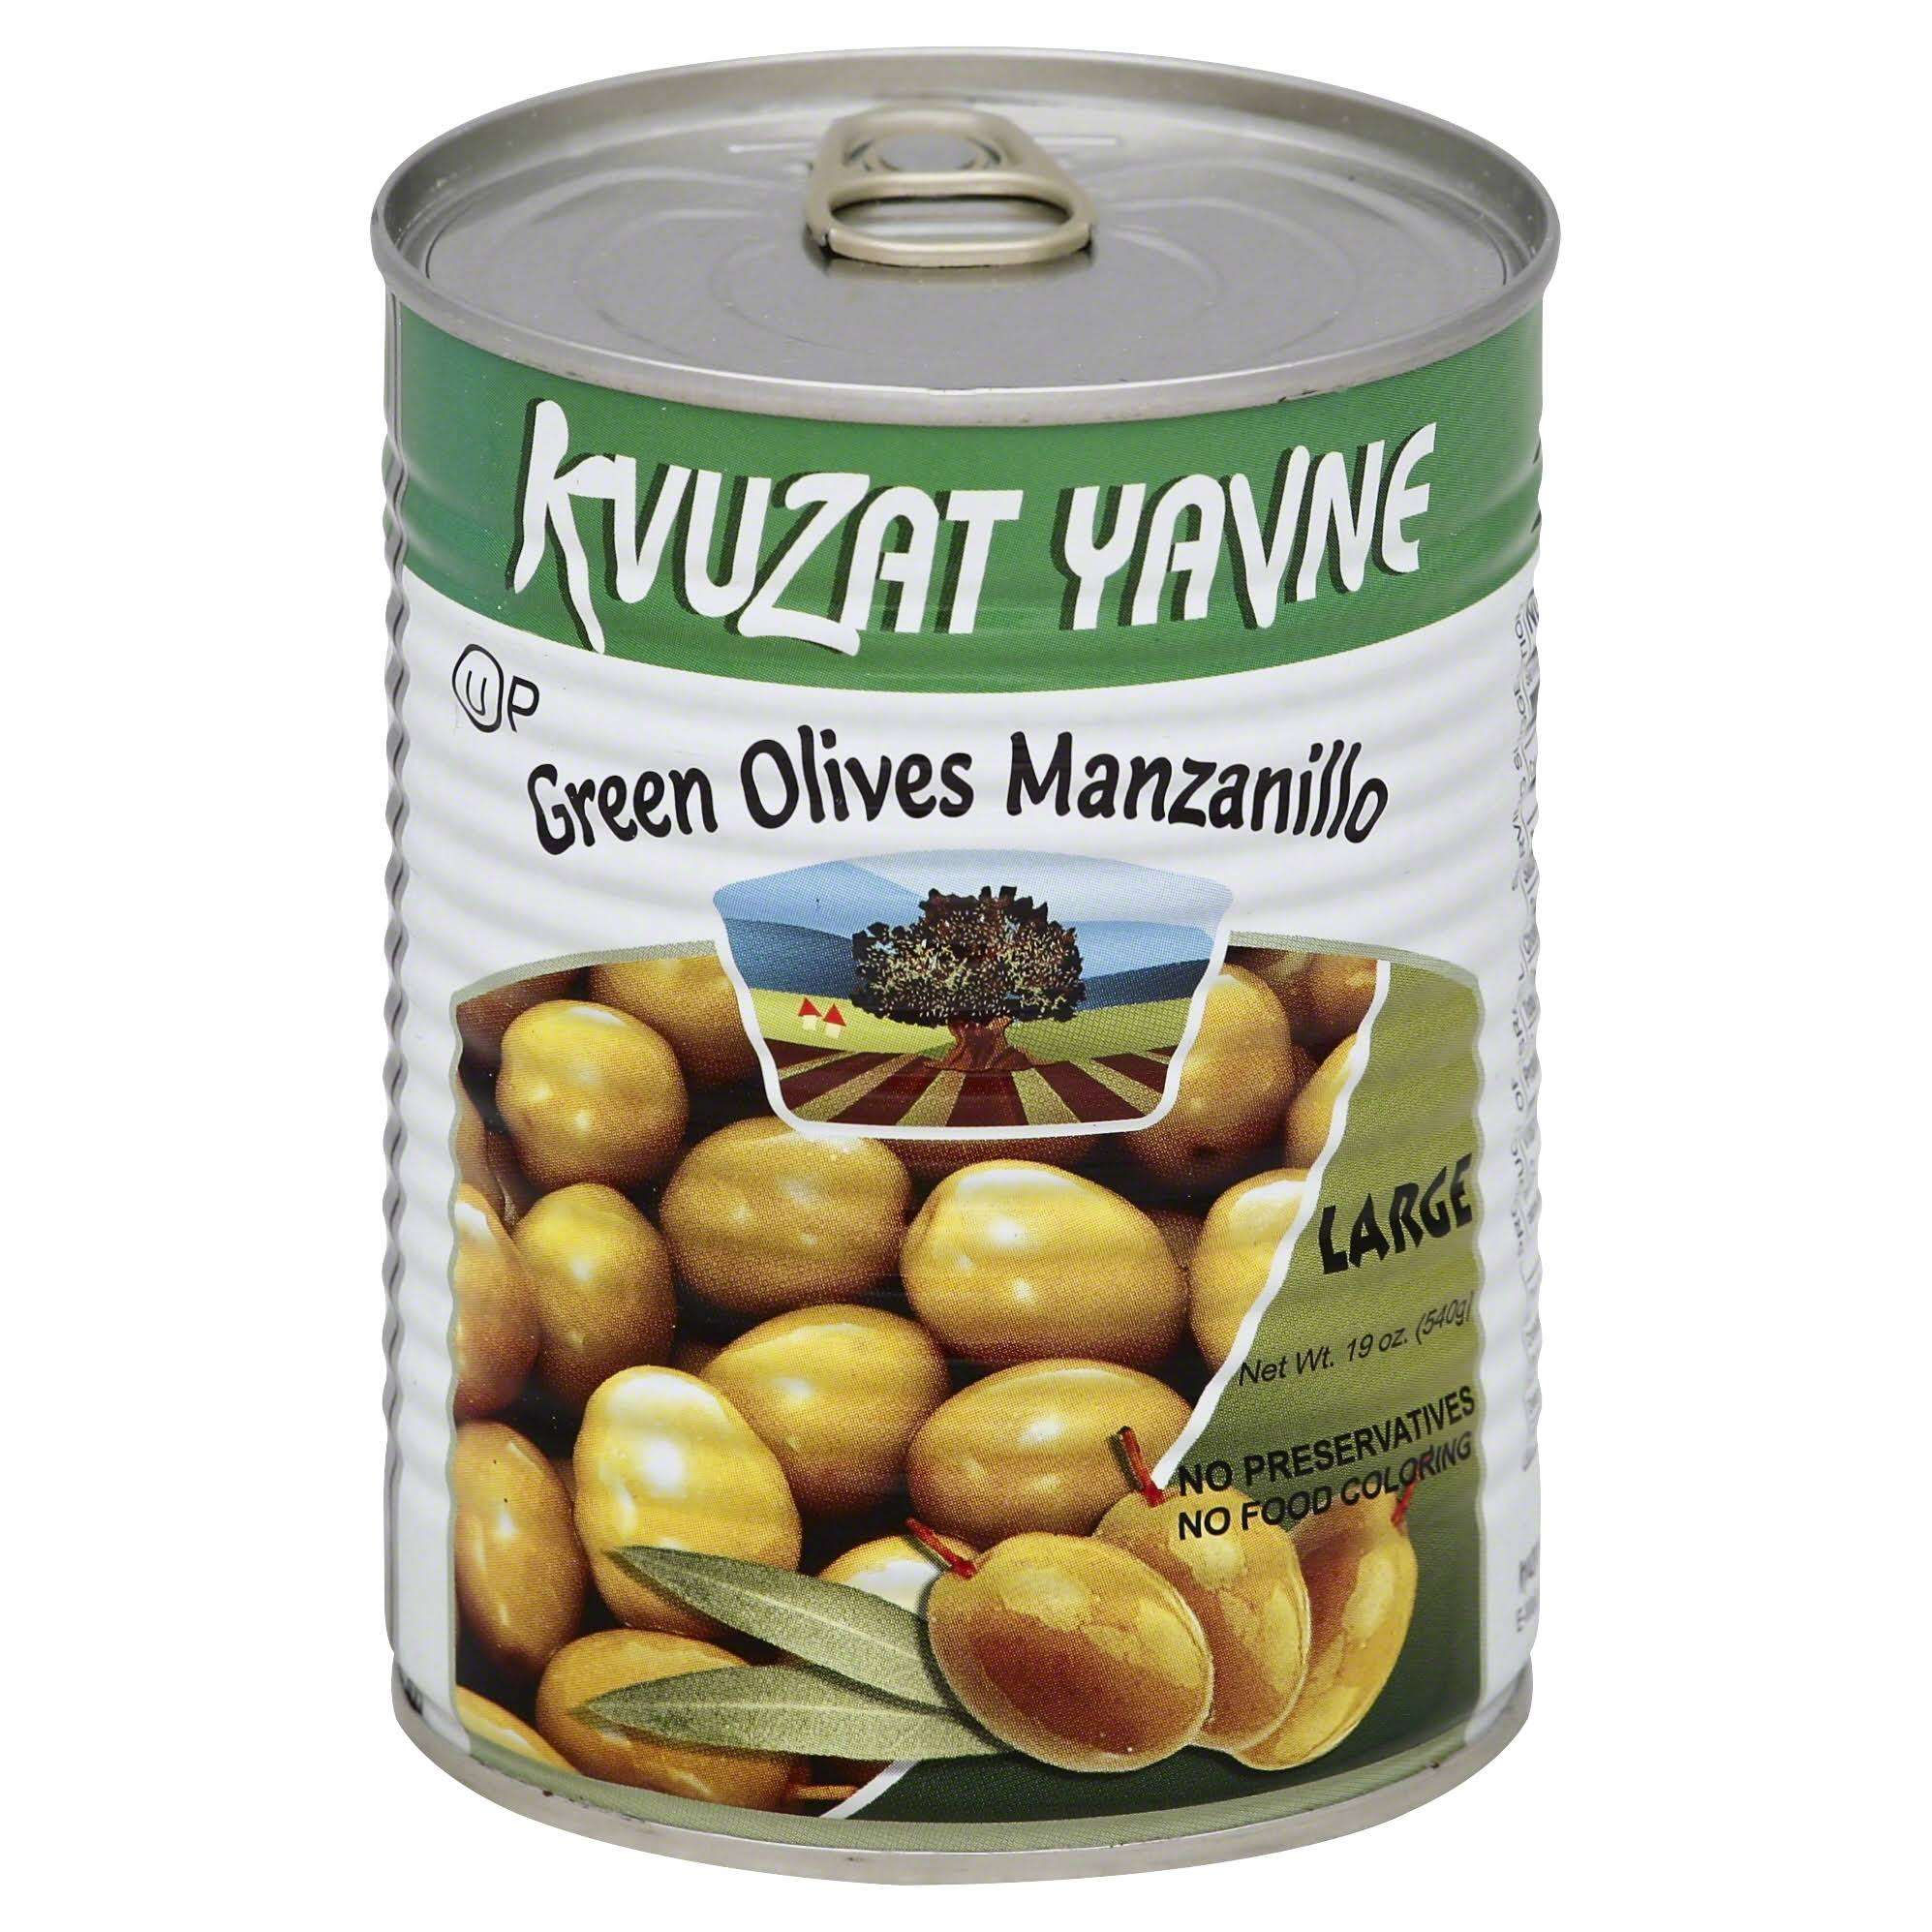 Kvuzat Yavne Large Green Olives Manzanillo - 19oz